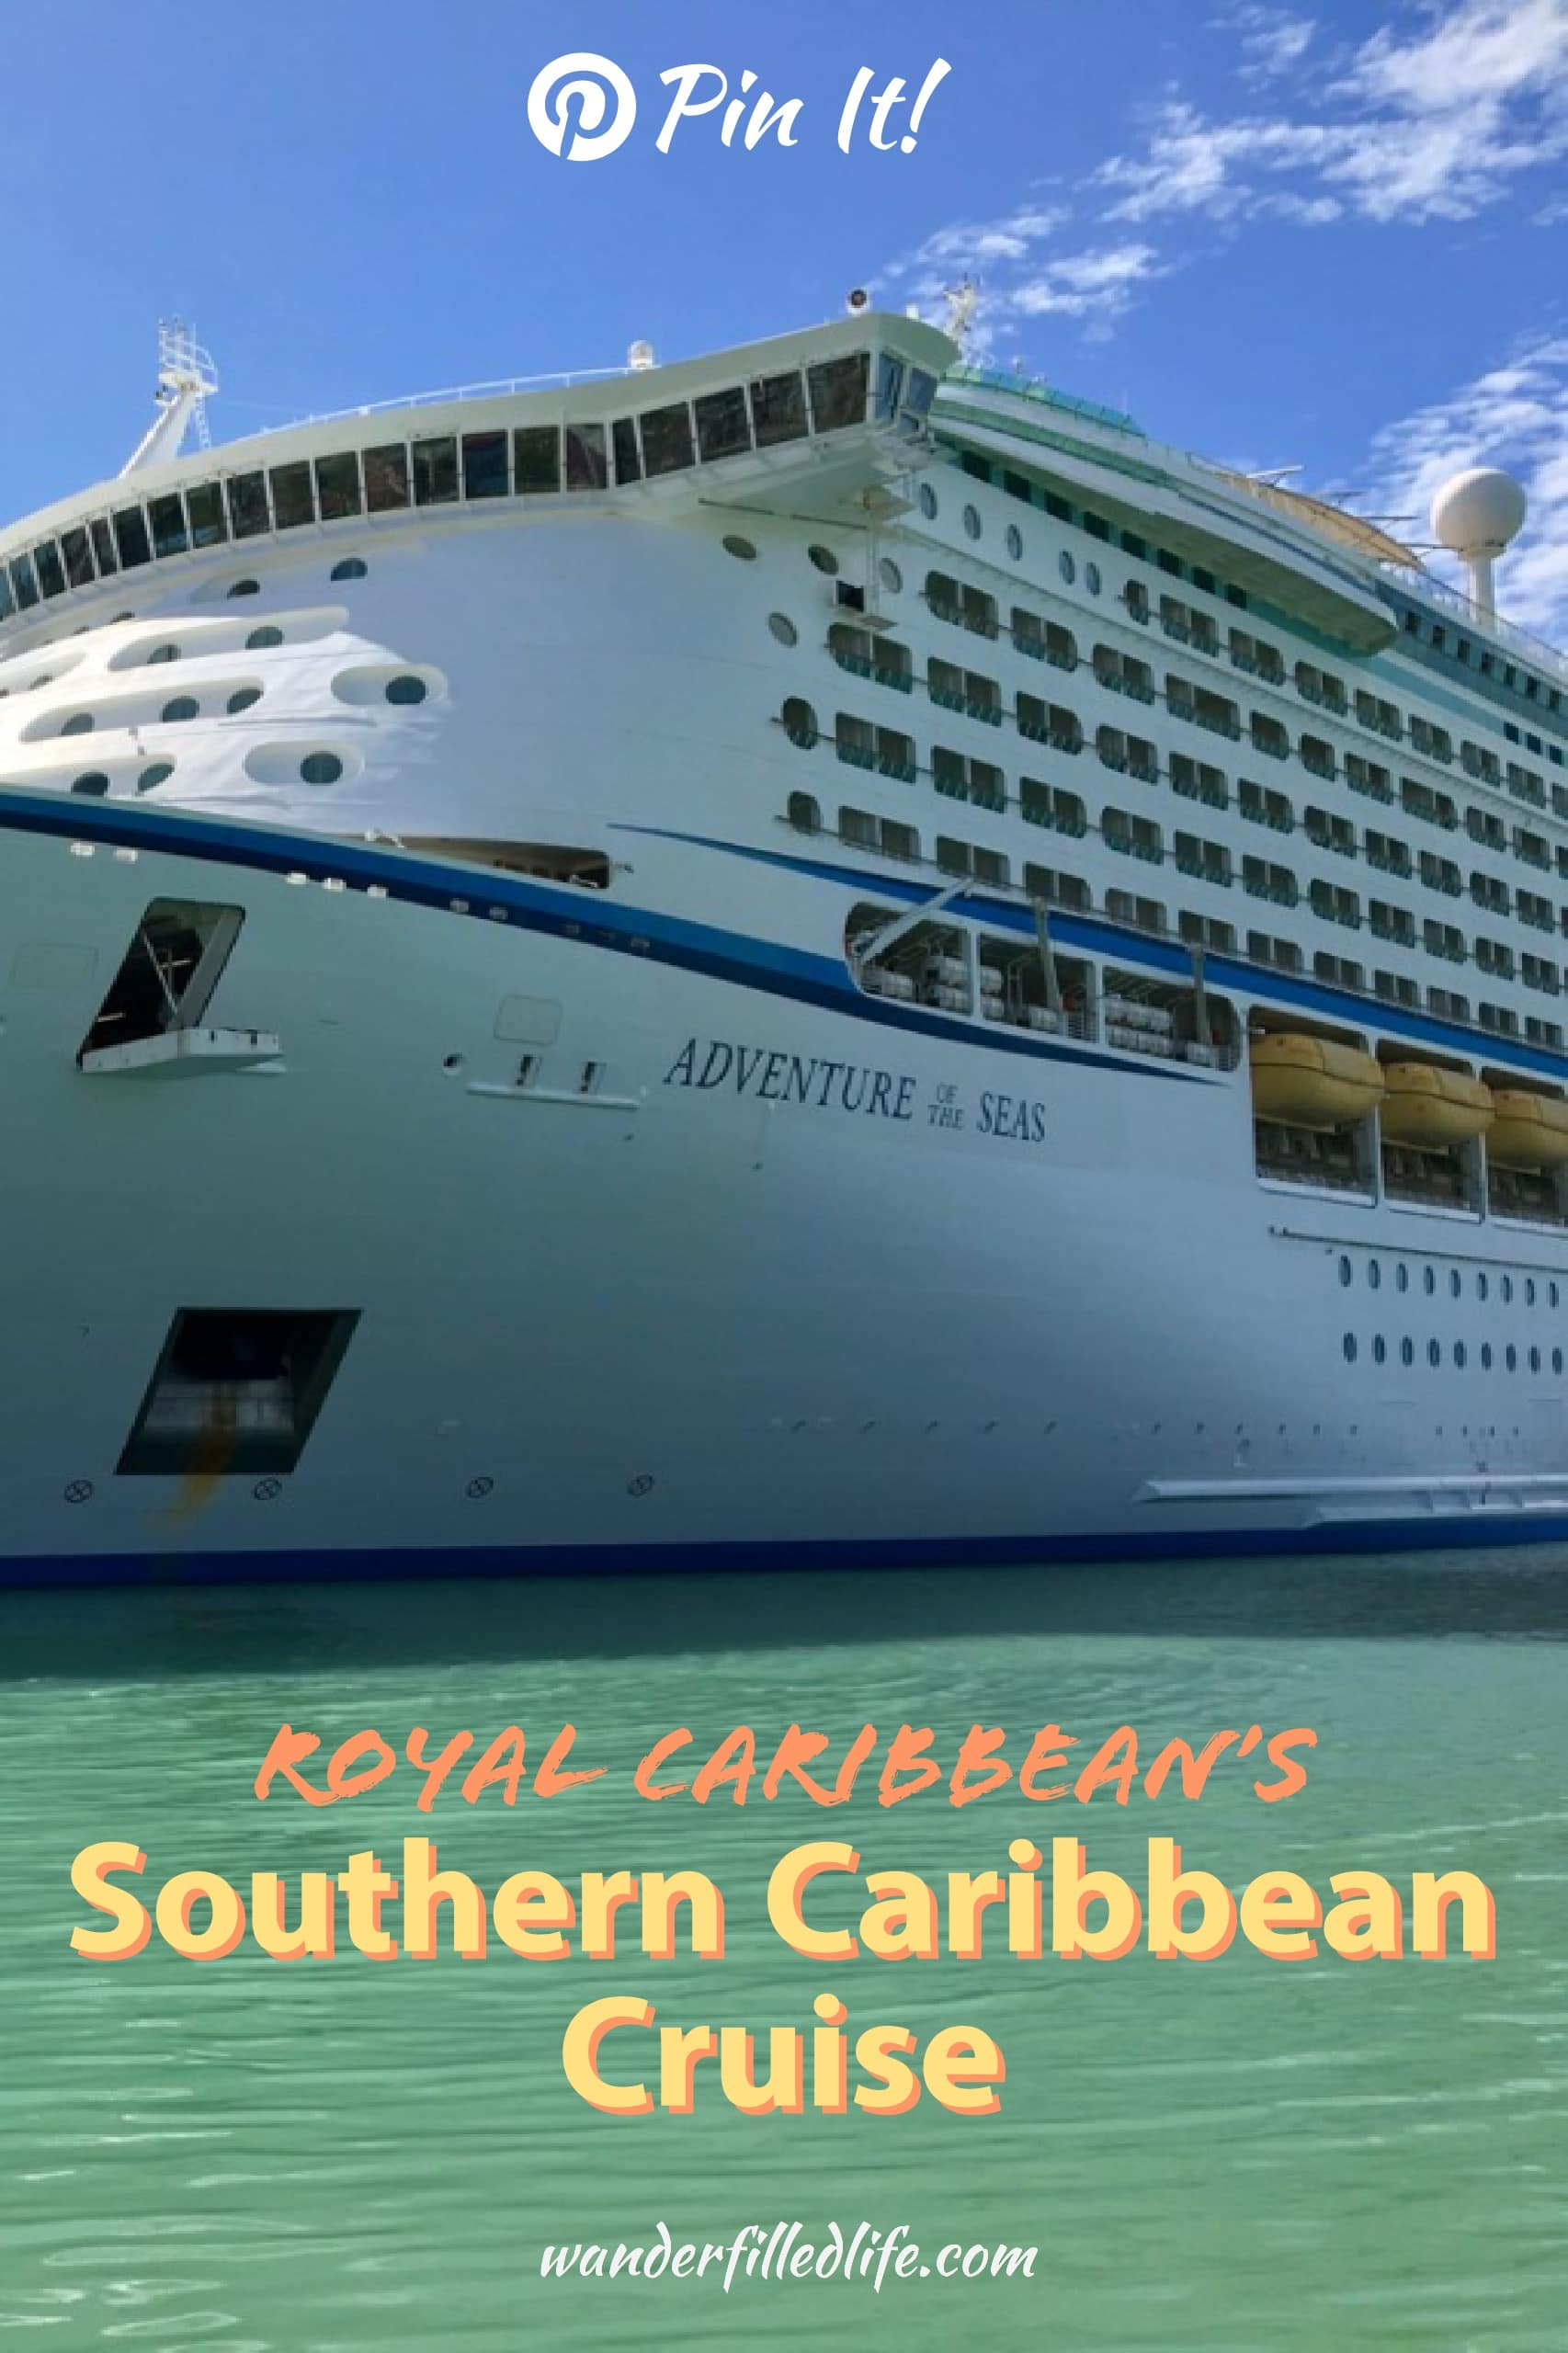 An overview of Royal Caribbean's Southern Caribbean cruise, including the ports of San Juan, St. Maarten, St. Kitts, St. John's, St. Lucia and Barbados.